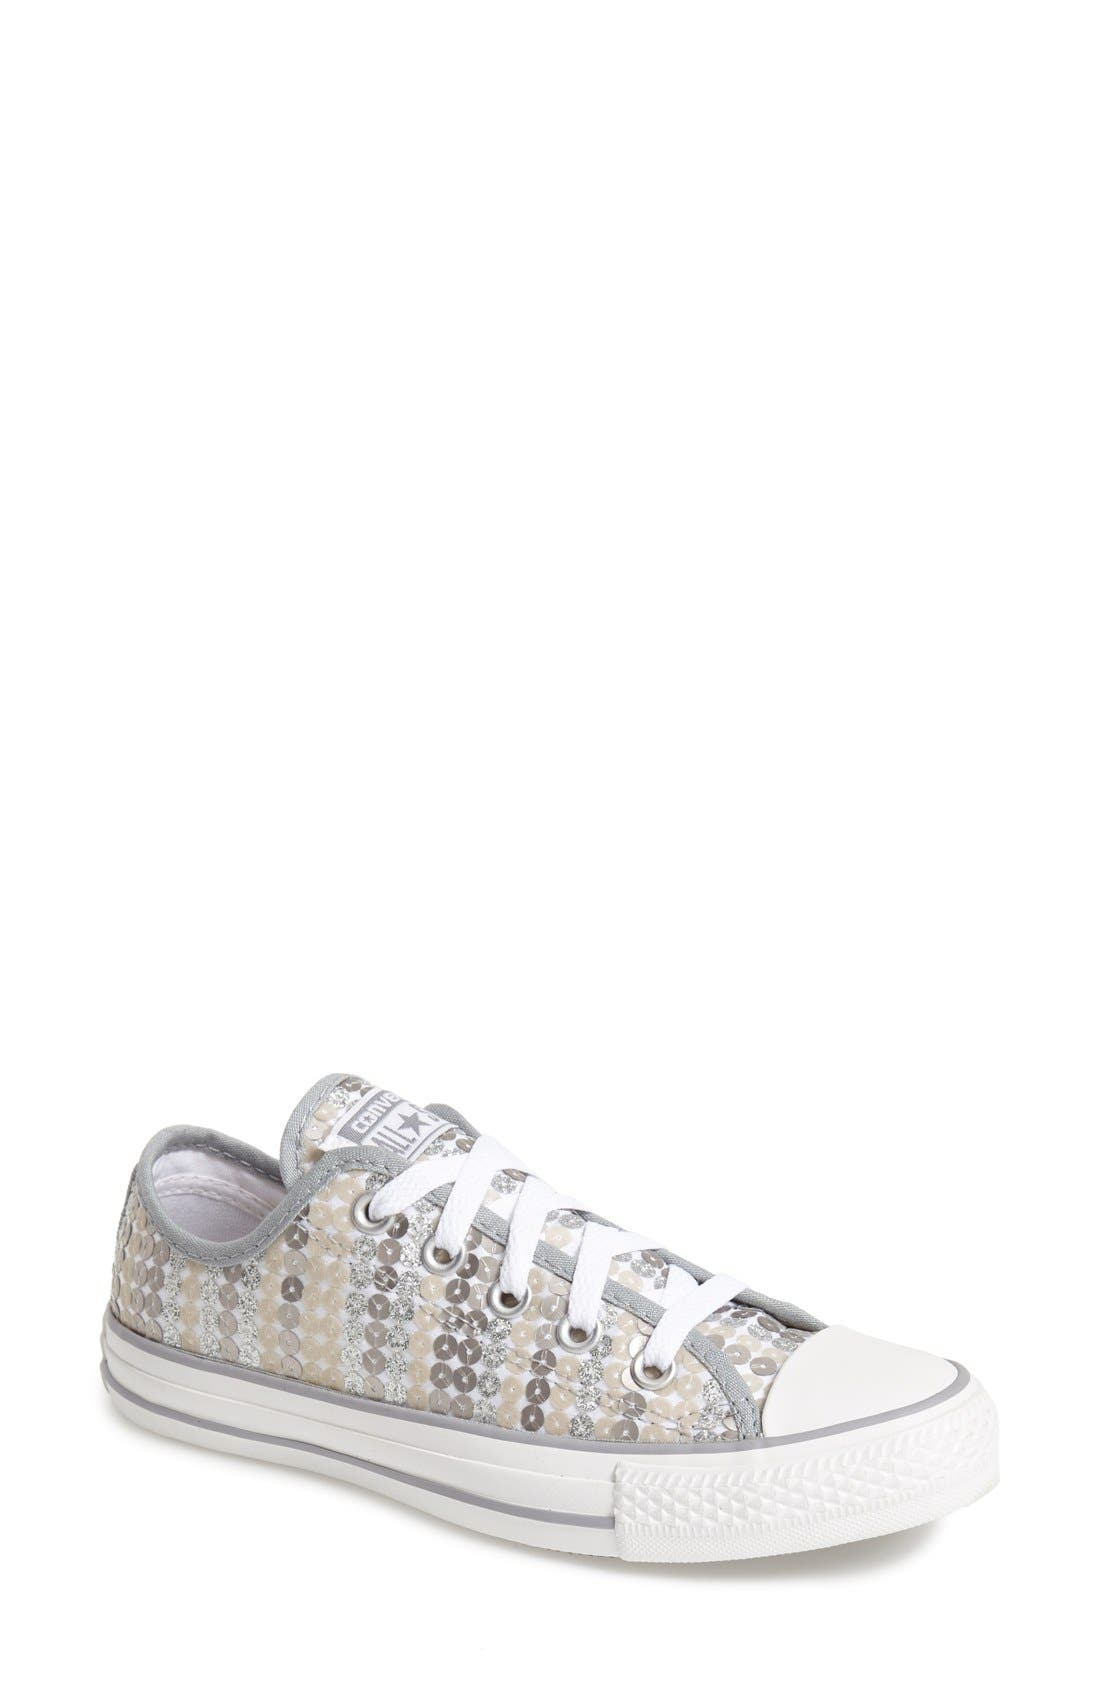 Alternate Image 1 Selected - Converse Chuck Taylor® All Star® 'Sequin Shine Ox' Low Top Sneaker (Women)